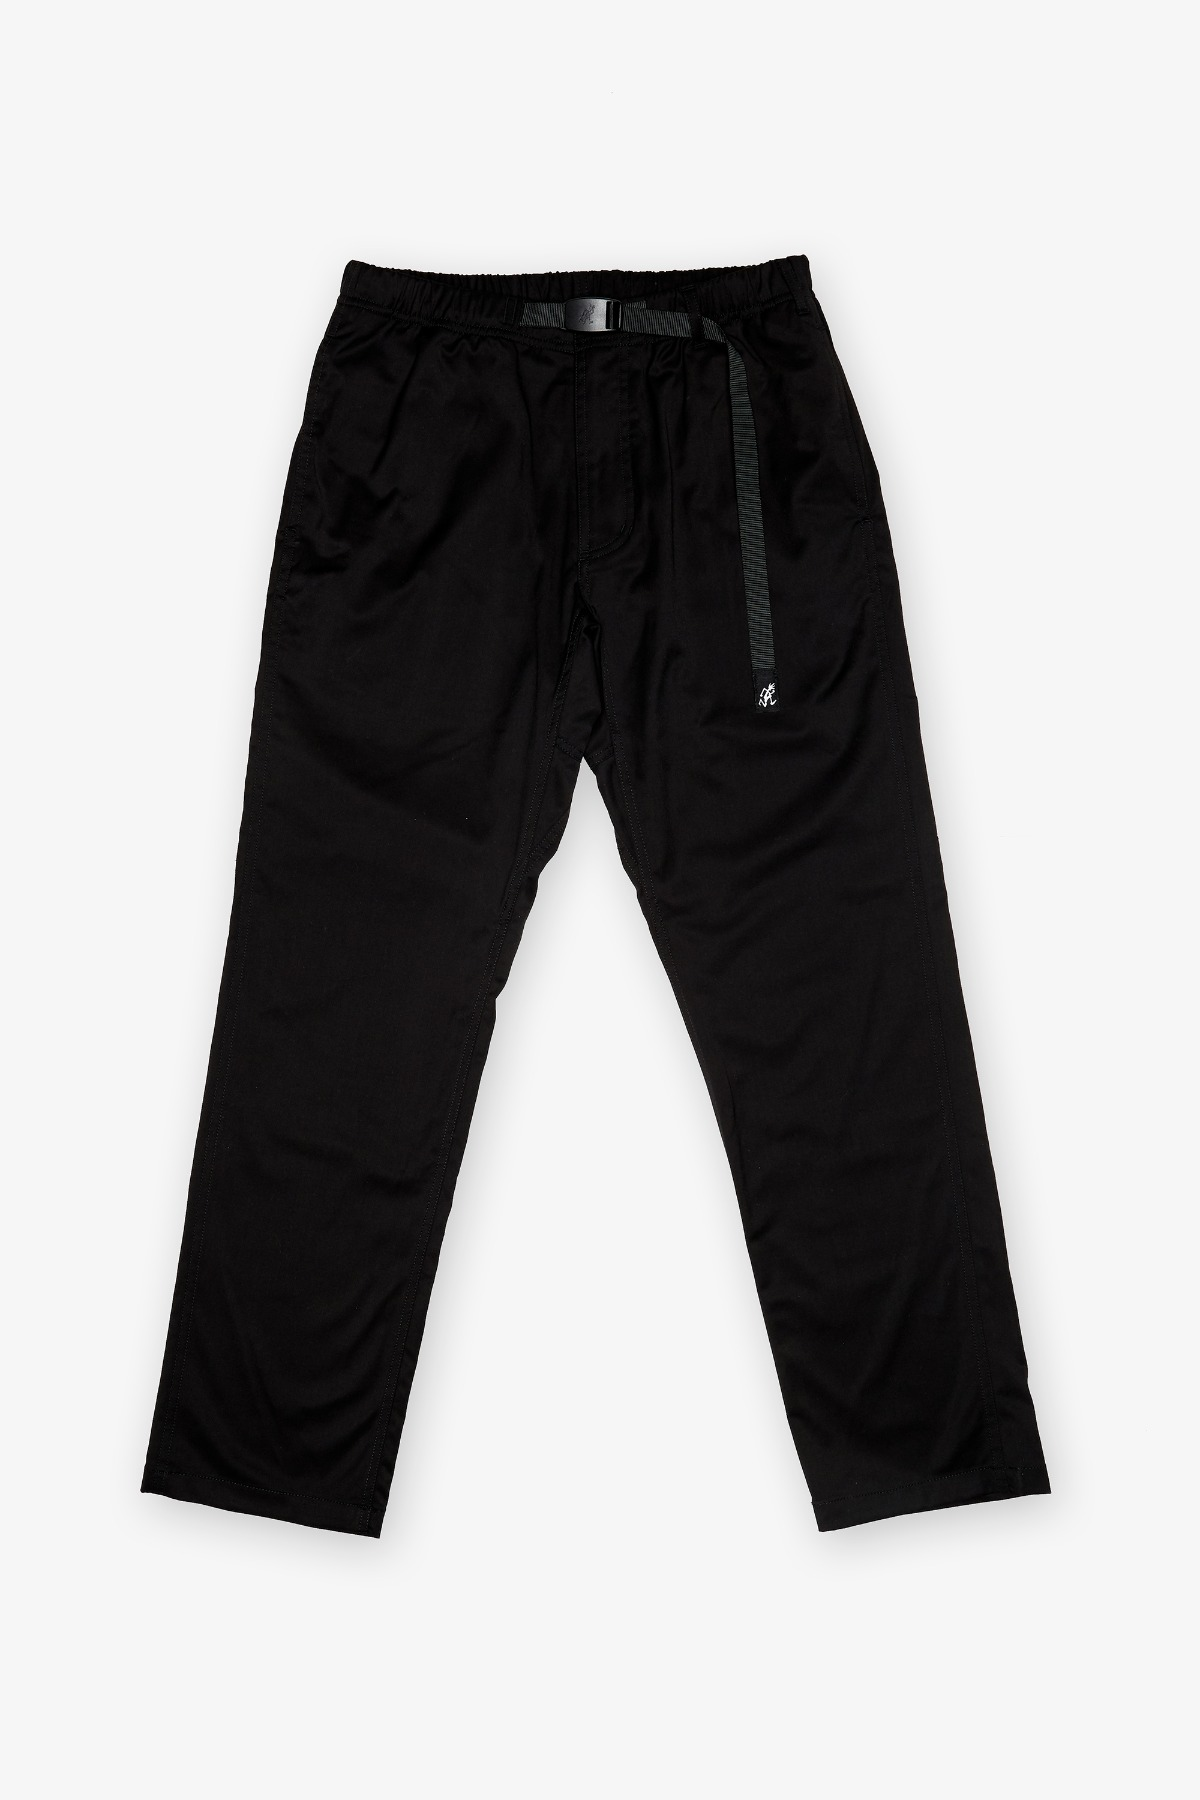 GABARDINE NN-PANTS JUST CUT BLACK